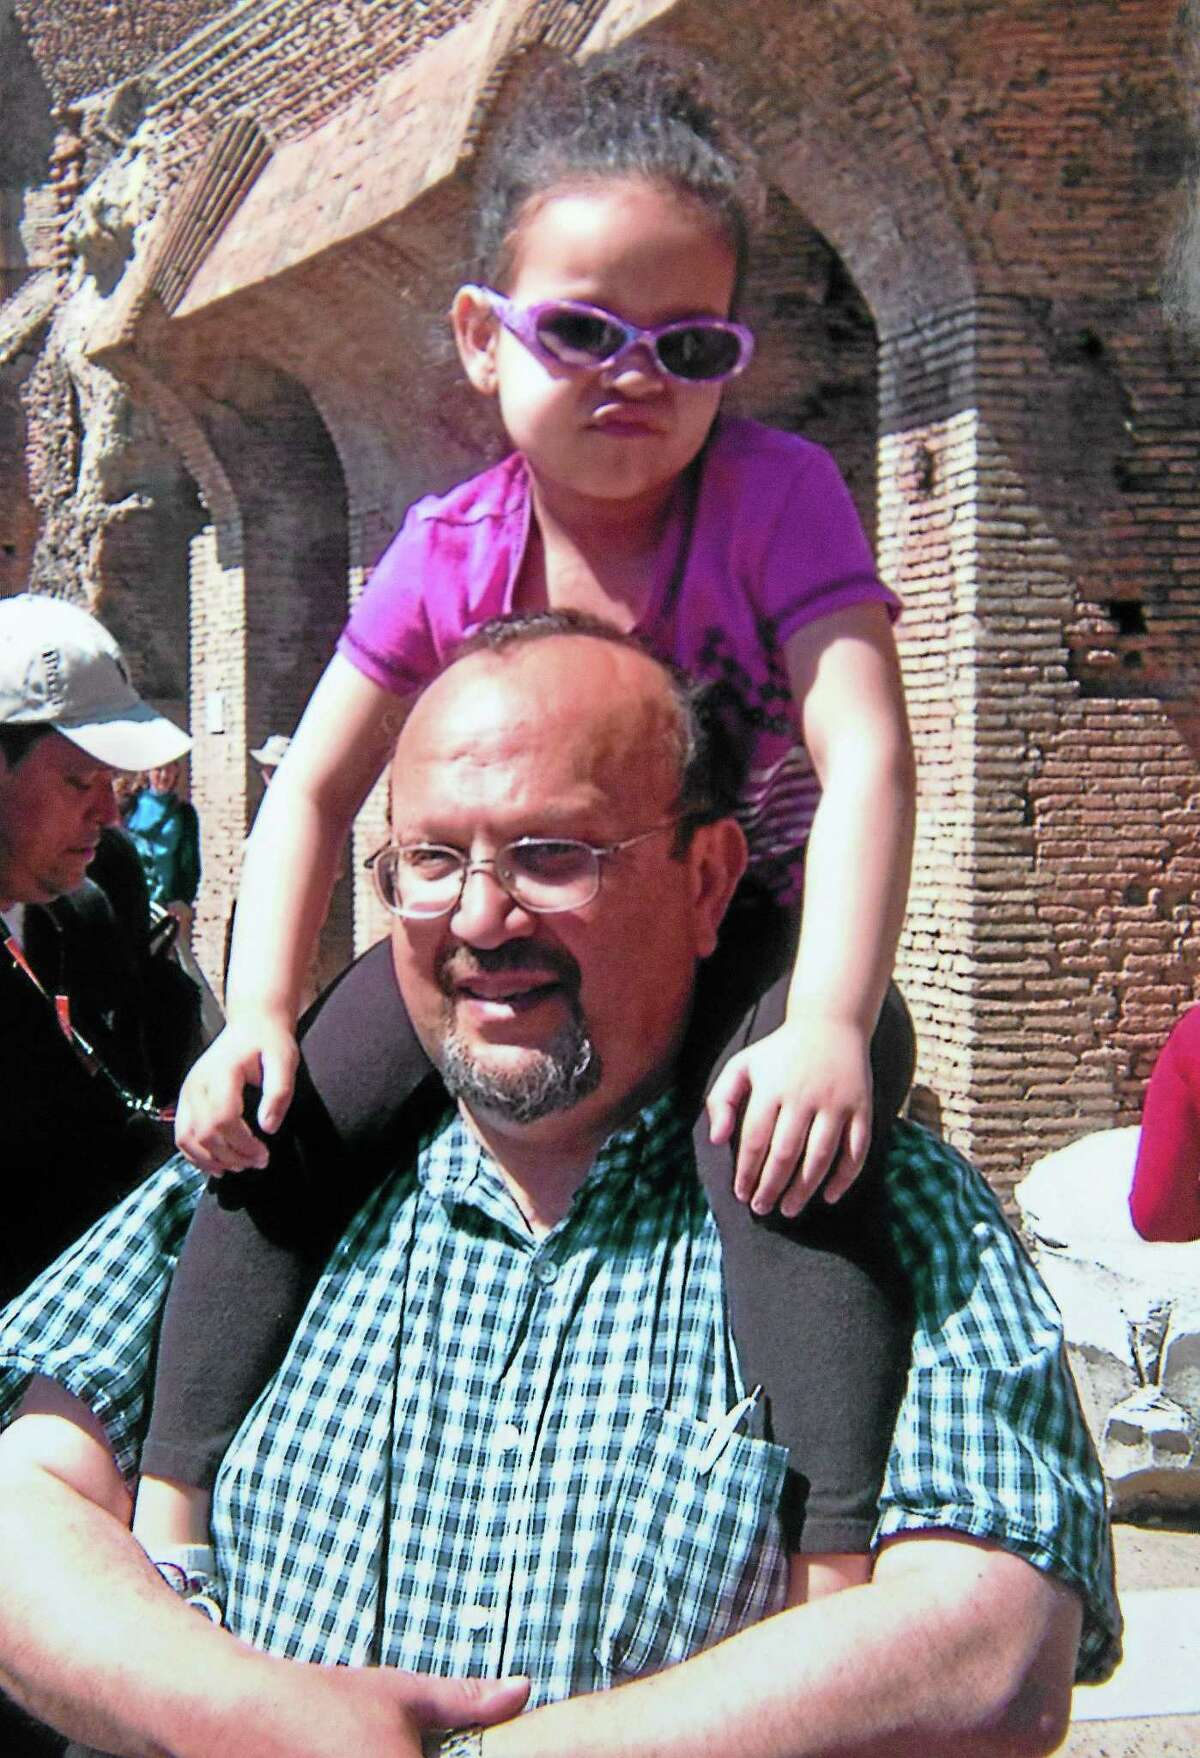 Arnold Giammarco and his daughter, Blair, in a photo taken in Italy.